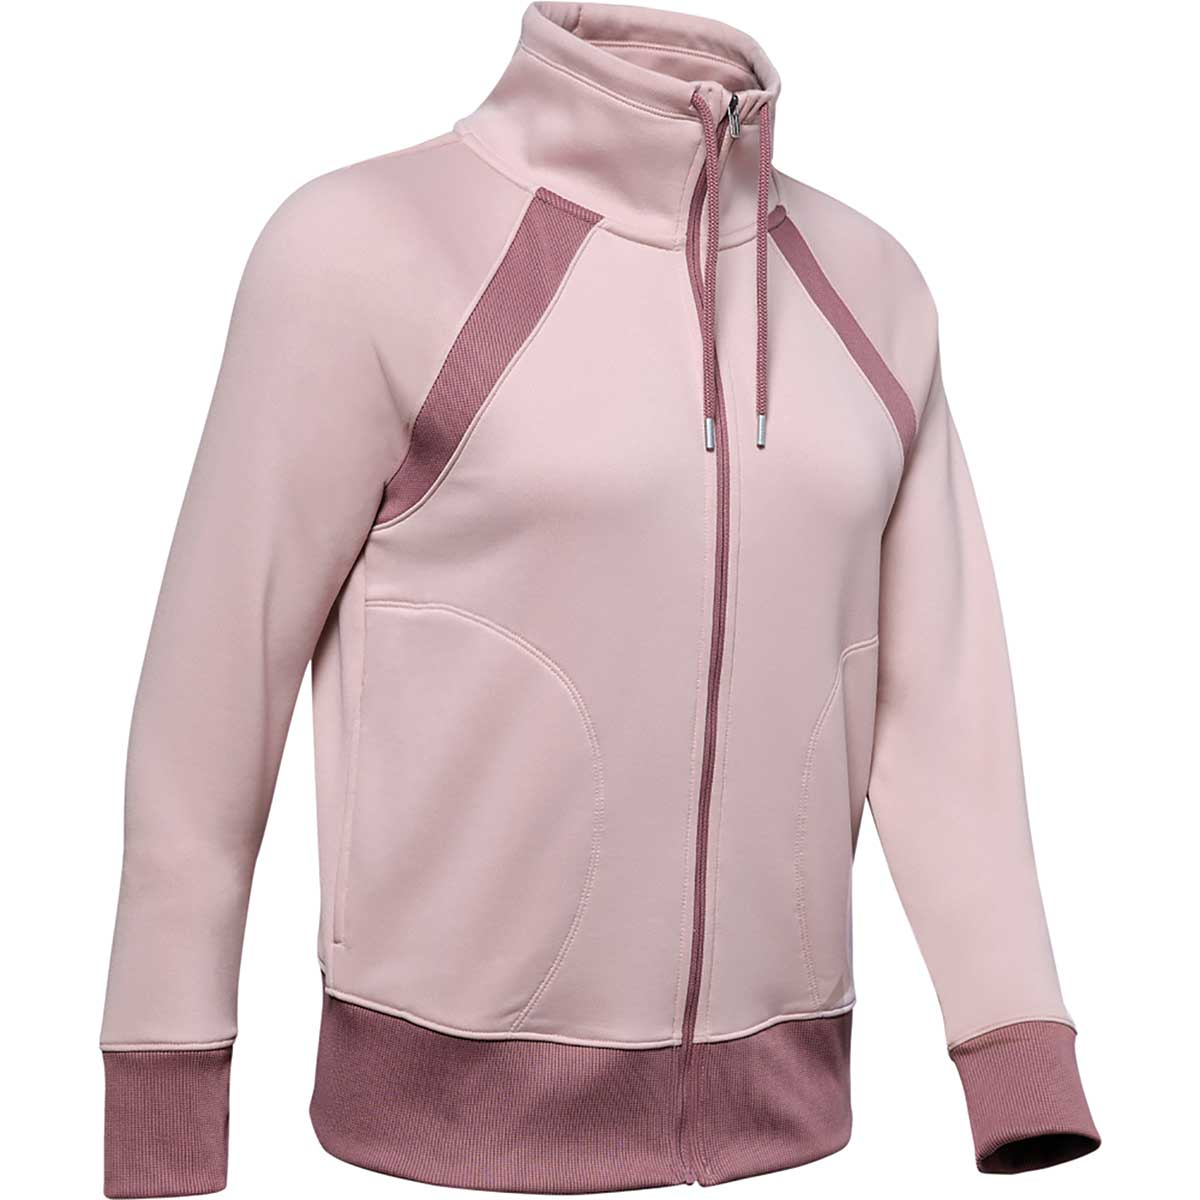 Under Armour Women's Dockside Full-Zip Sweatshirt